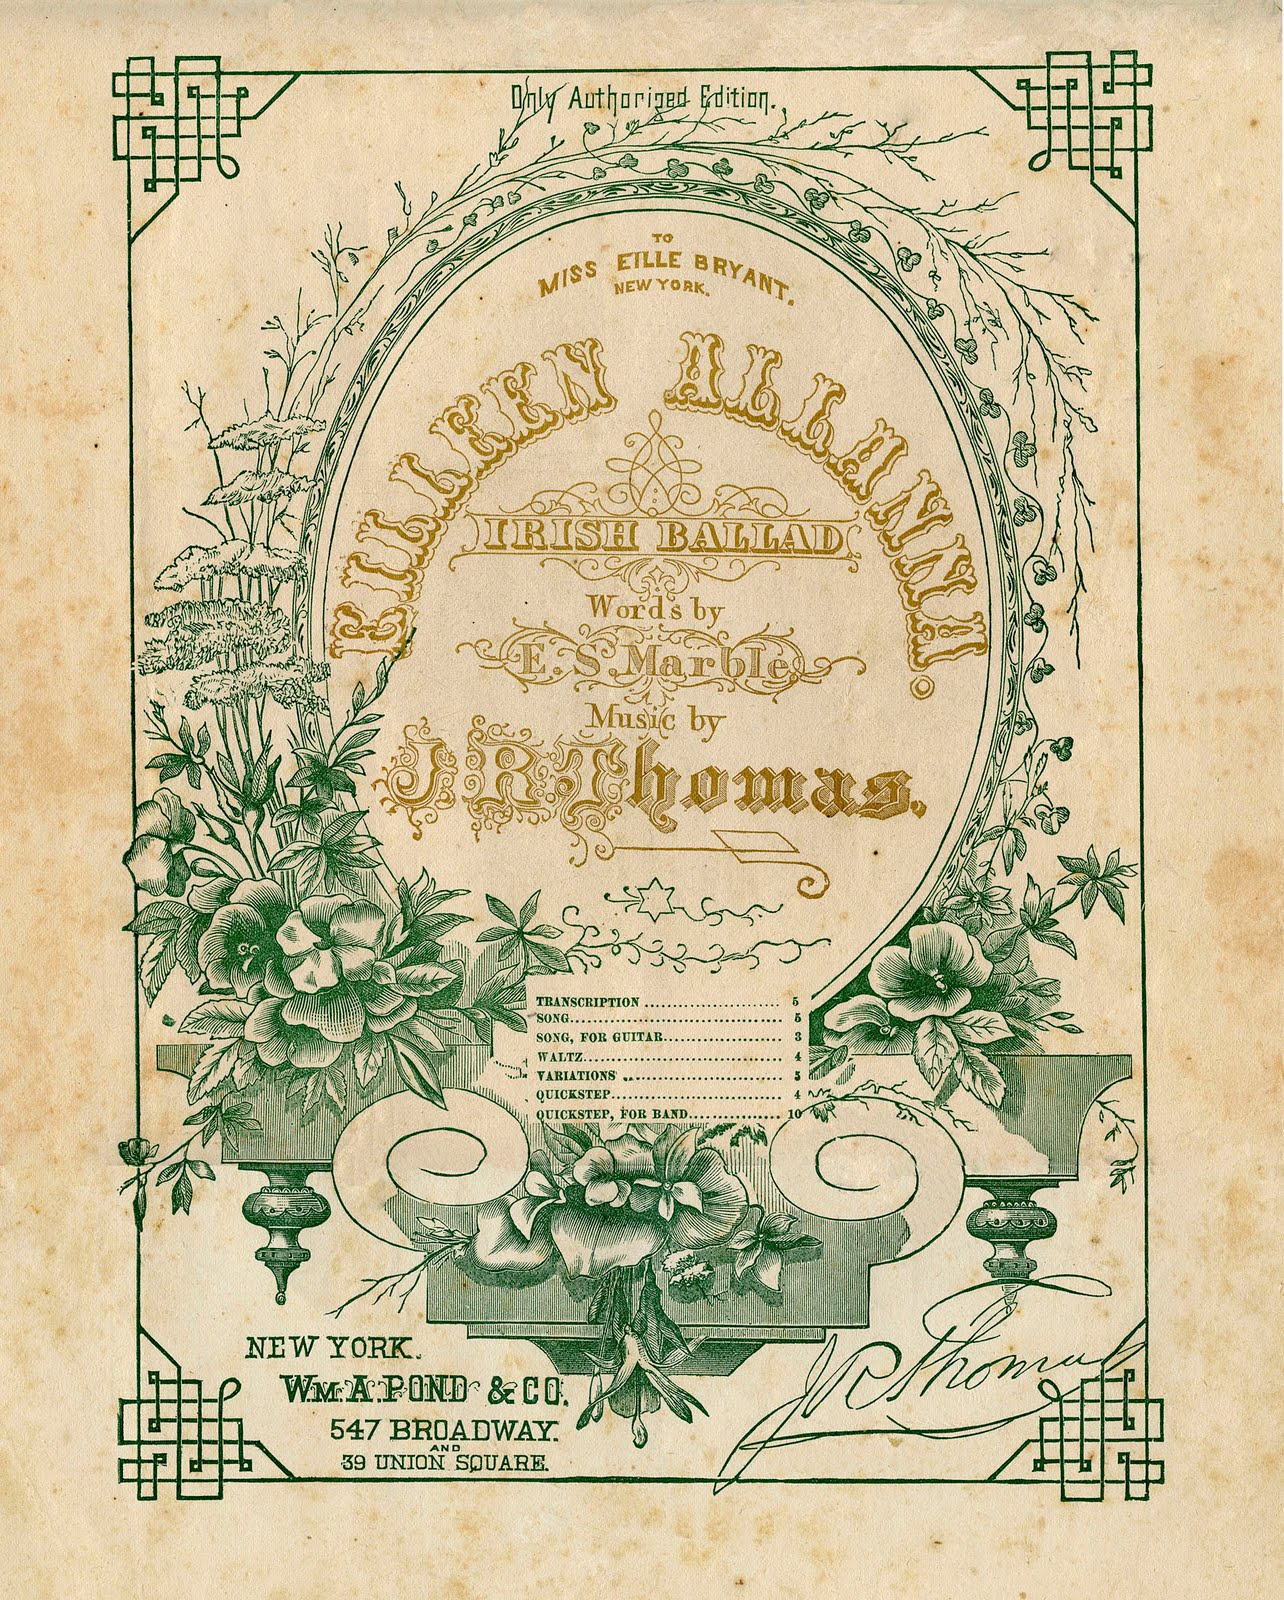 Old sheet music clipart graphic royalty free Vintage Ephemera Clip Art - Amazing Sheet Music Frame - The ... graphic royalty free